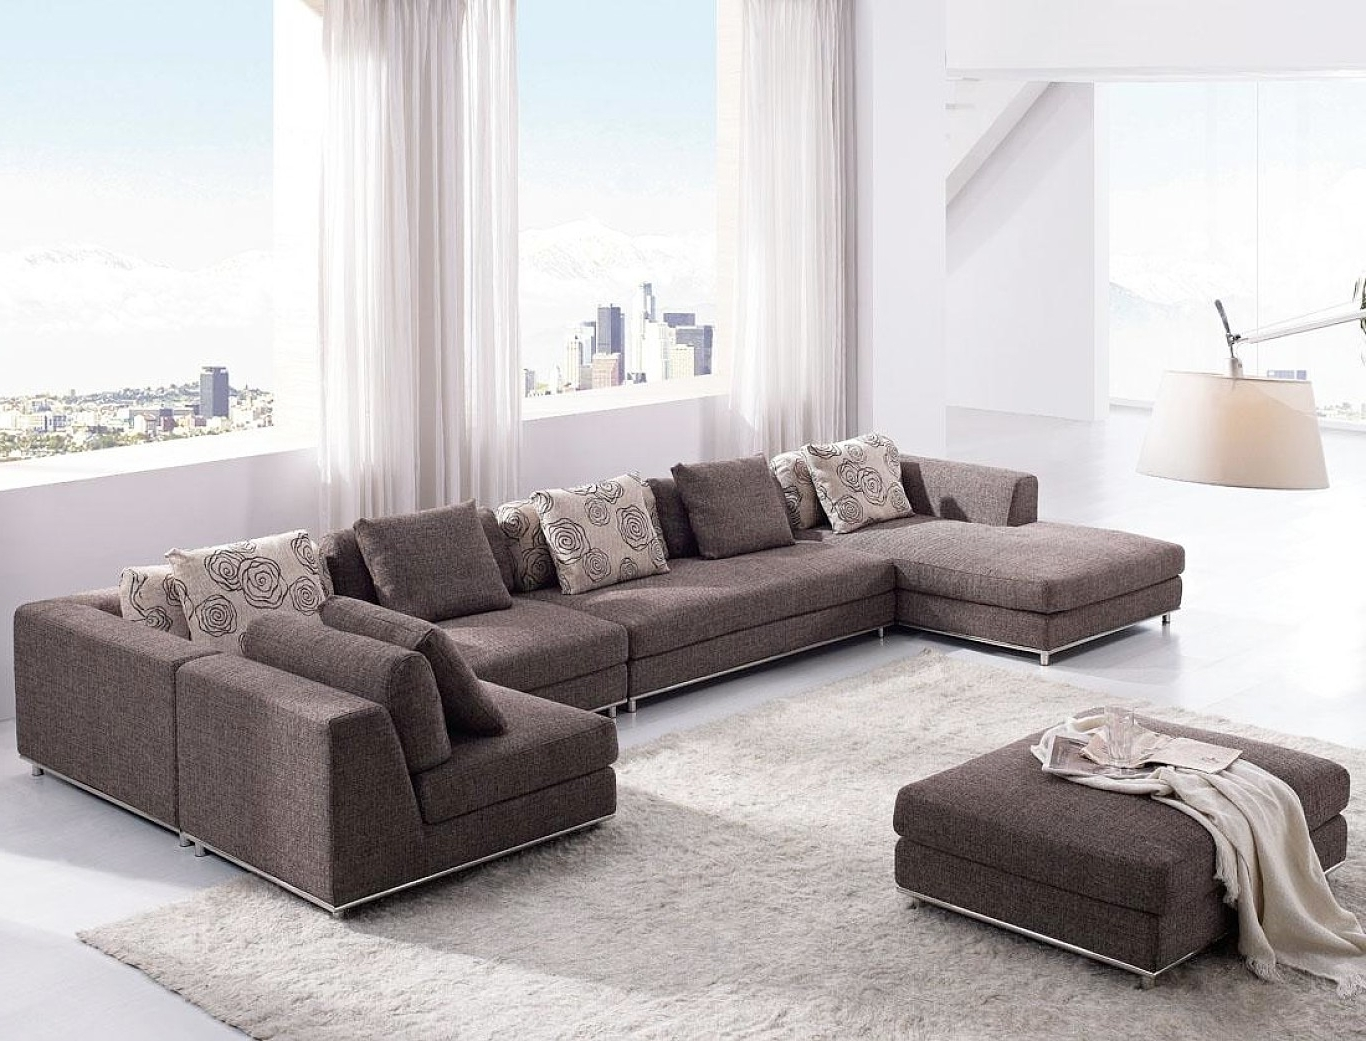 Modern Living Room Sets Houzz Modern Sofa Contemporary Living Room Intended For Latest Houzz Sectional Sofas (View 13 of 20)